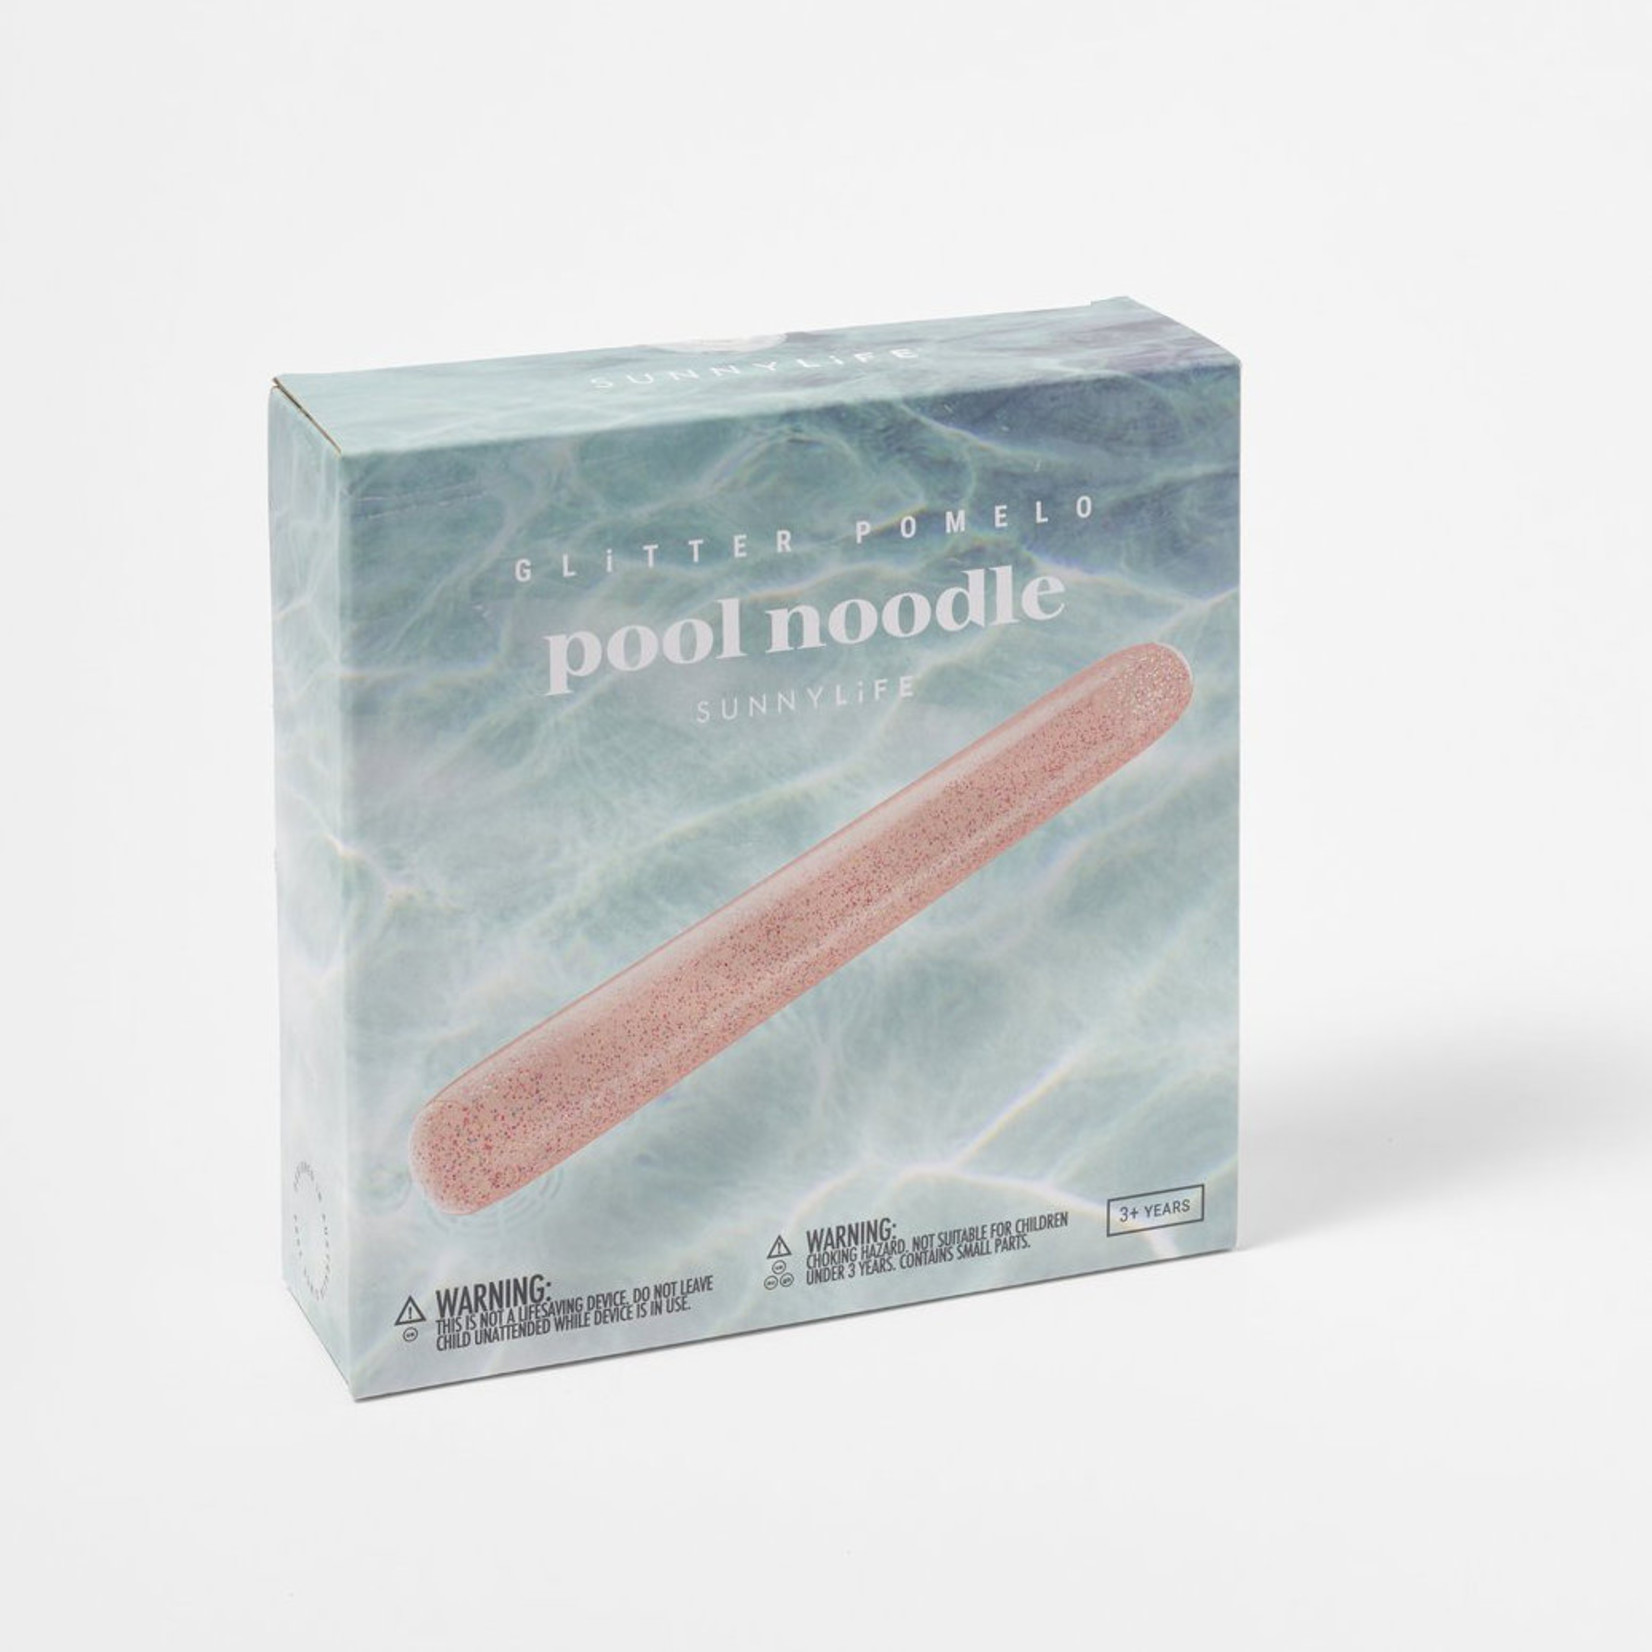 SUNNY LIFE POOL NOODLE GLITTER CORAL